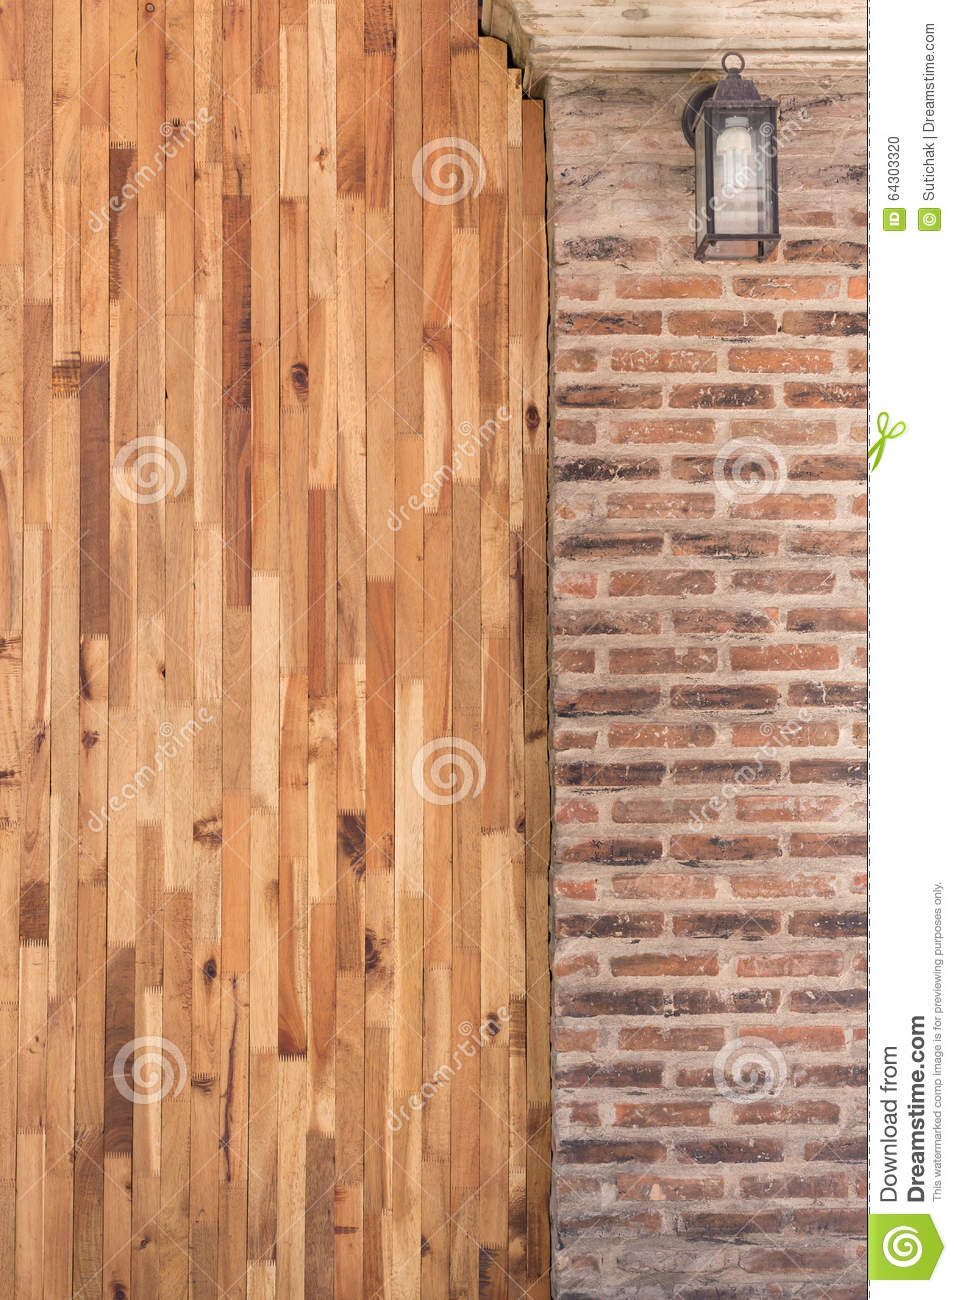 Wood and cement brick wall design of interior stock photo for Wood designs for walls interior designers